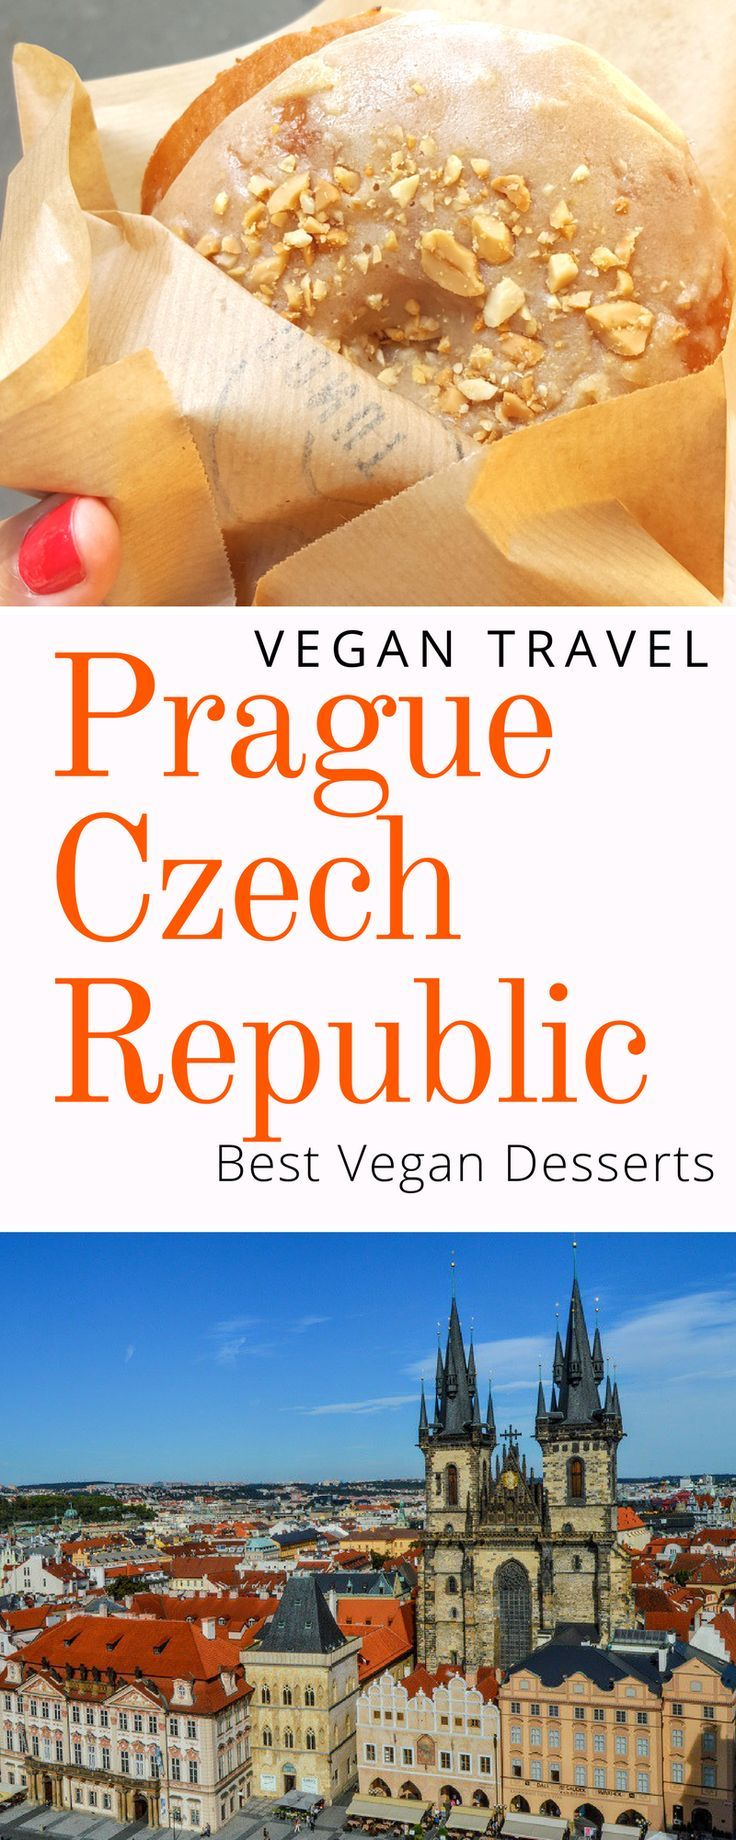 Best Vegan Desserts in Prague: Donuts, Cakes, Ice Cream, and more. Click here to find out the best places to get vegan dessert in Prague Czech Republic.